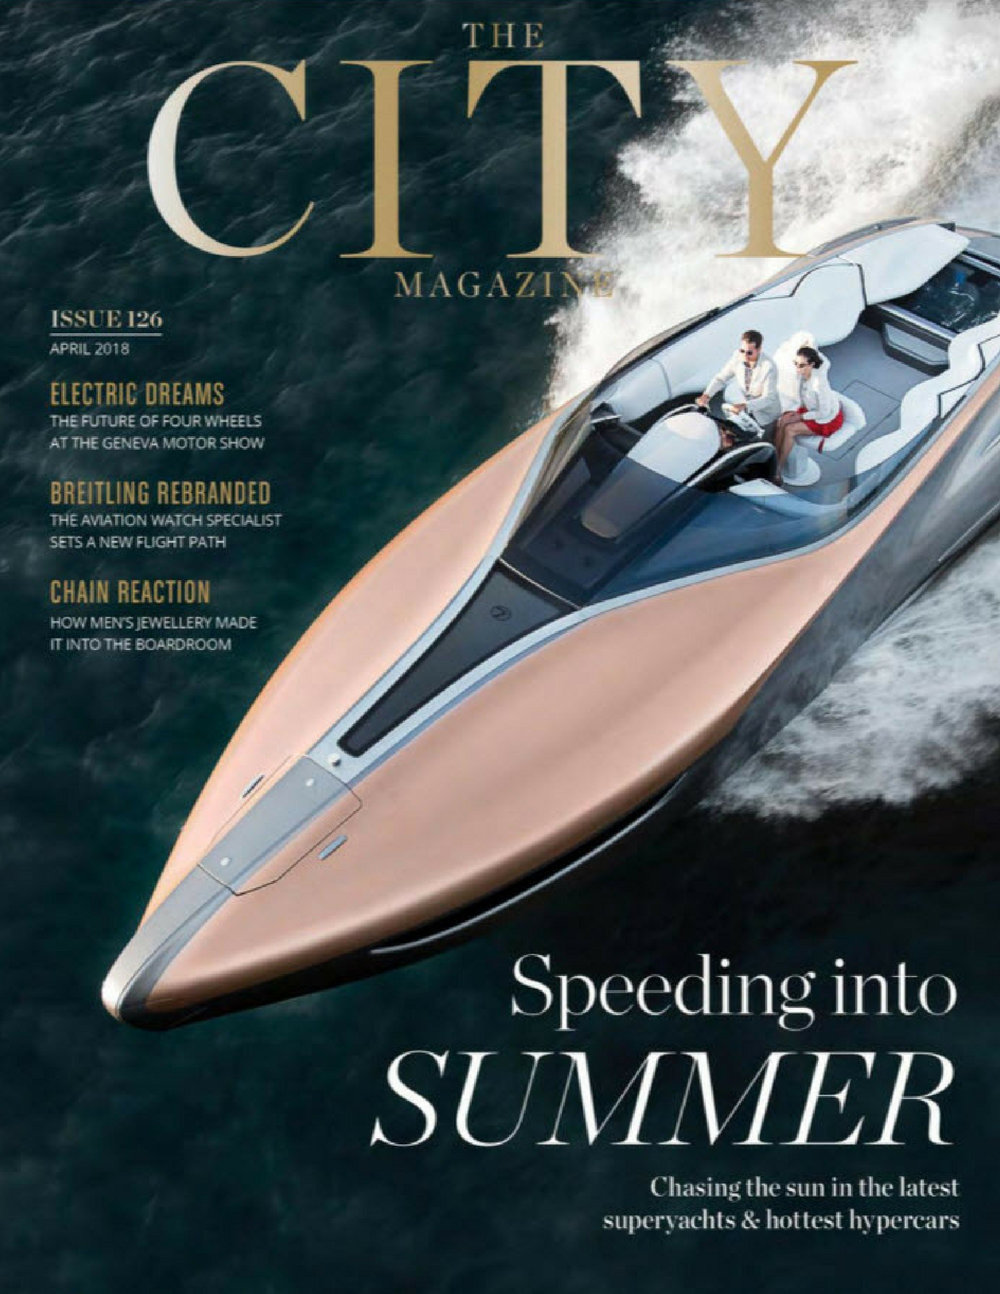 Copy of The City Magazine.jpg